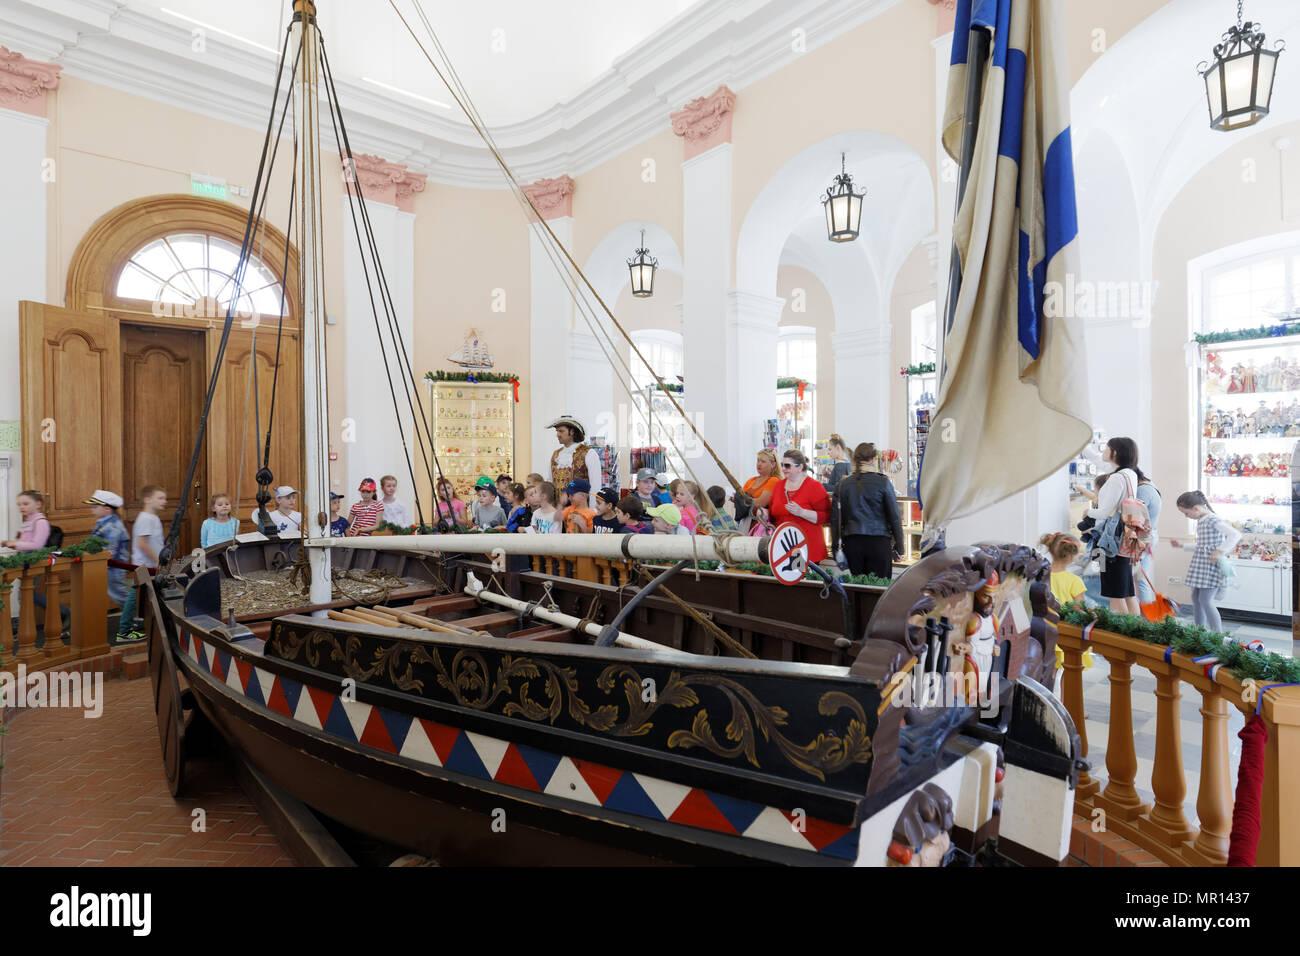 St. Petersburg, Russia, 25th May, 2018. Children in the Boathouse in St. Peter and Paul fortress in the first day of school vacation. The Boathouse houses the ticket offices for visiting St. Peter and Paul cathedral - Stock Image